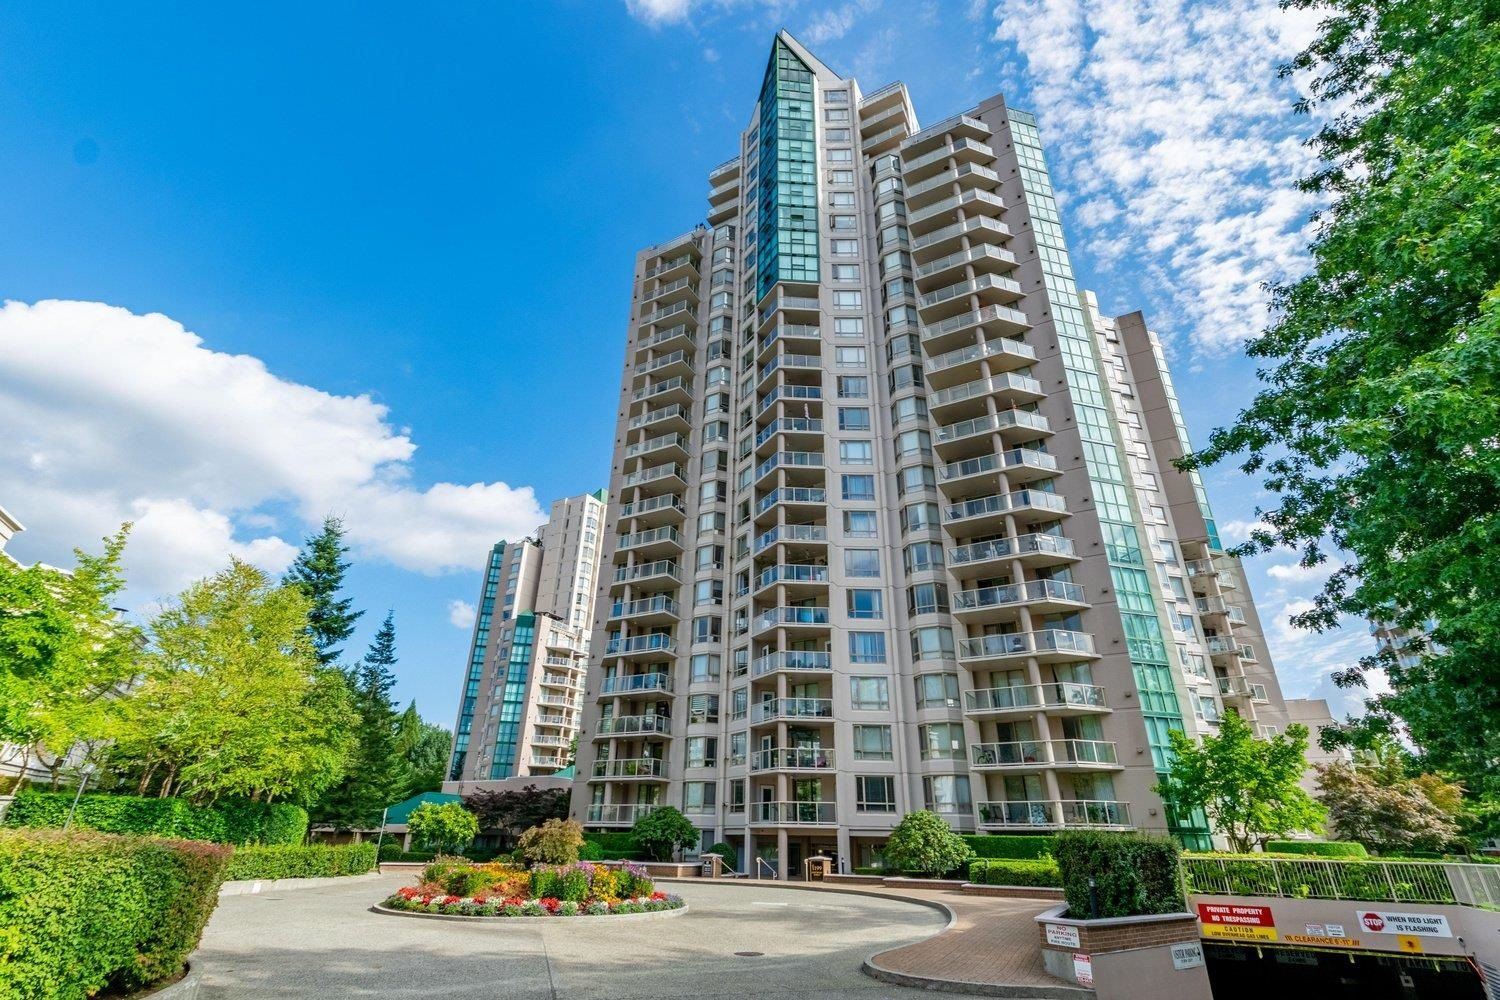 """Main Photo: 1703 1199 EASTWOOD Street in Coquitlam: North Coquitlam Condo for sale in """"The Selkirk"""" : MLS®# R2616911"""